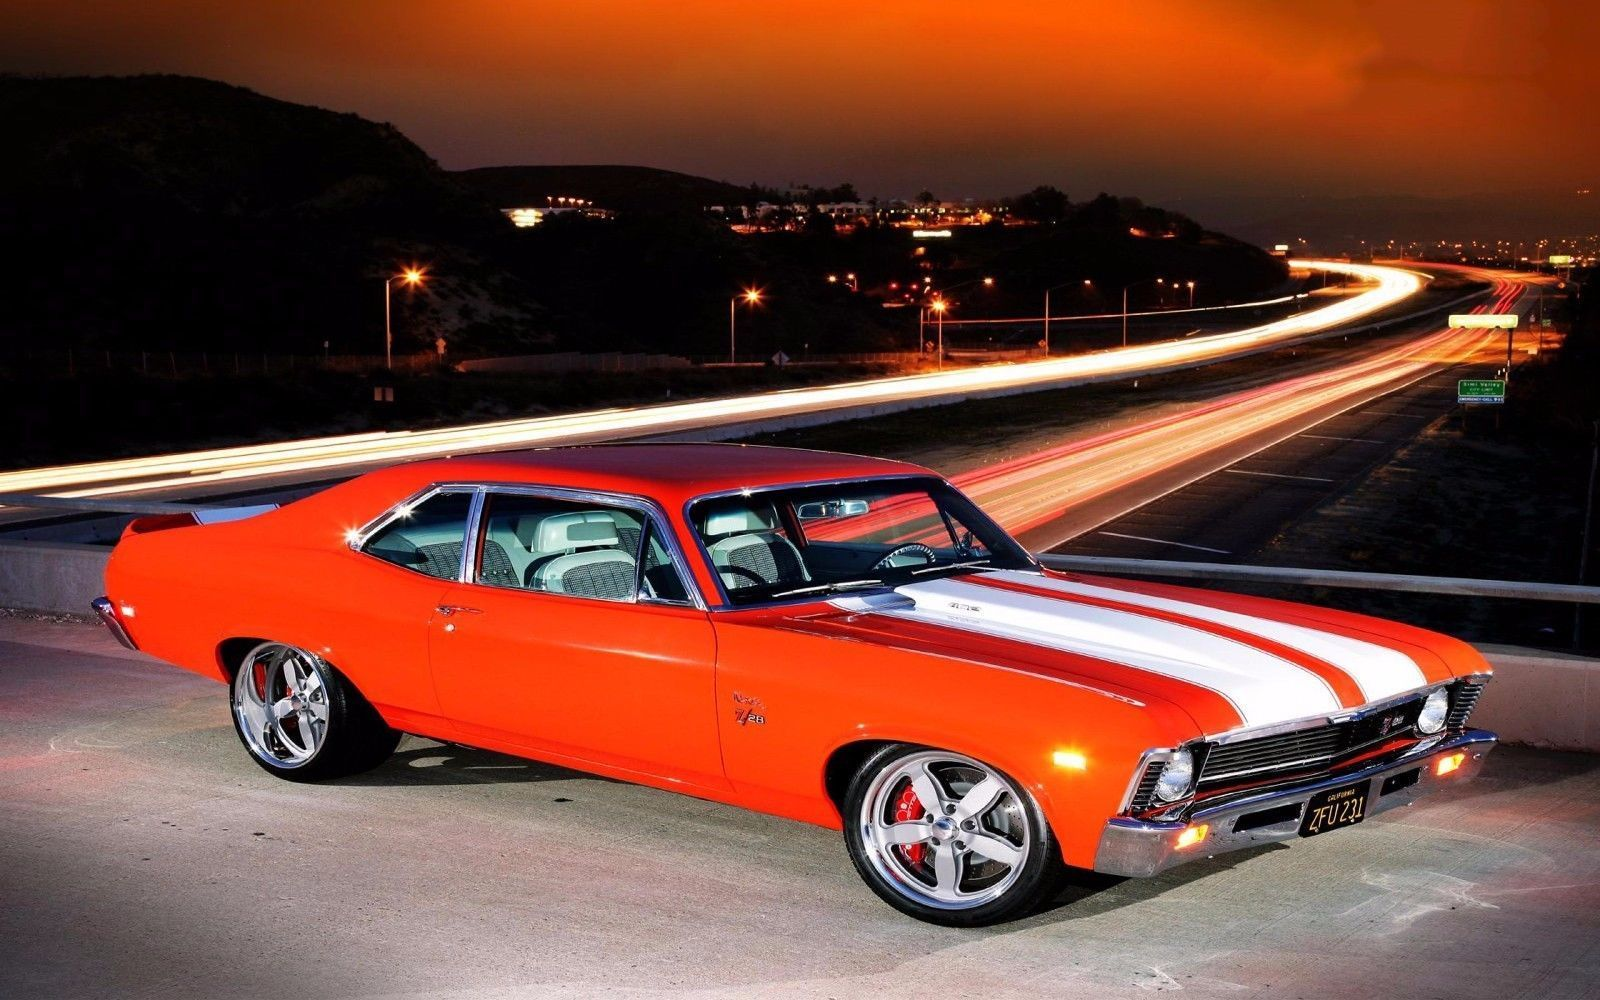 Muscle Cars Forever Classic Cars Muscle Muscle Cars Hot Rods